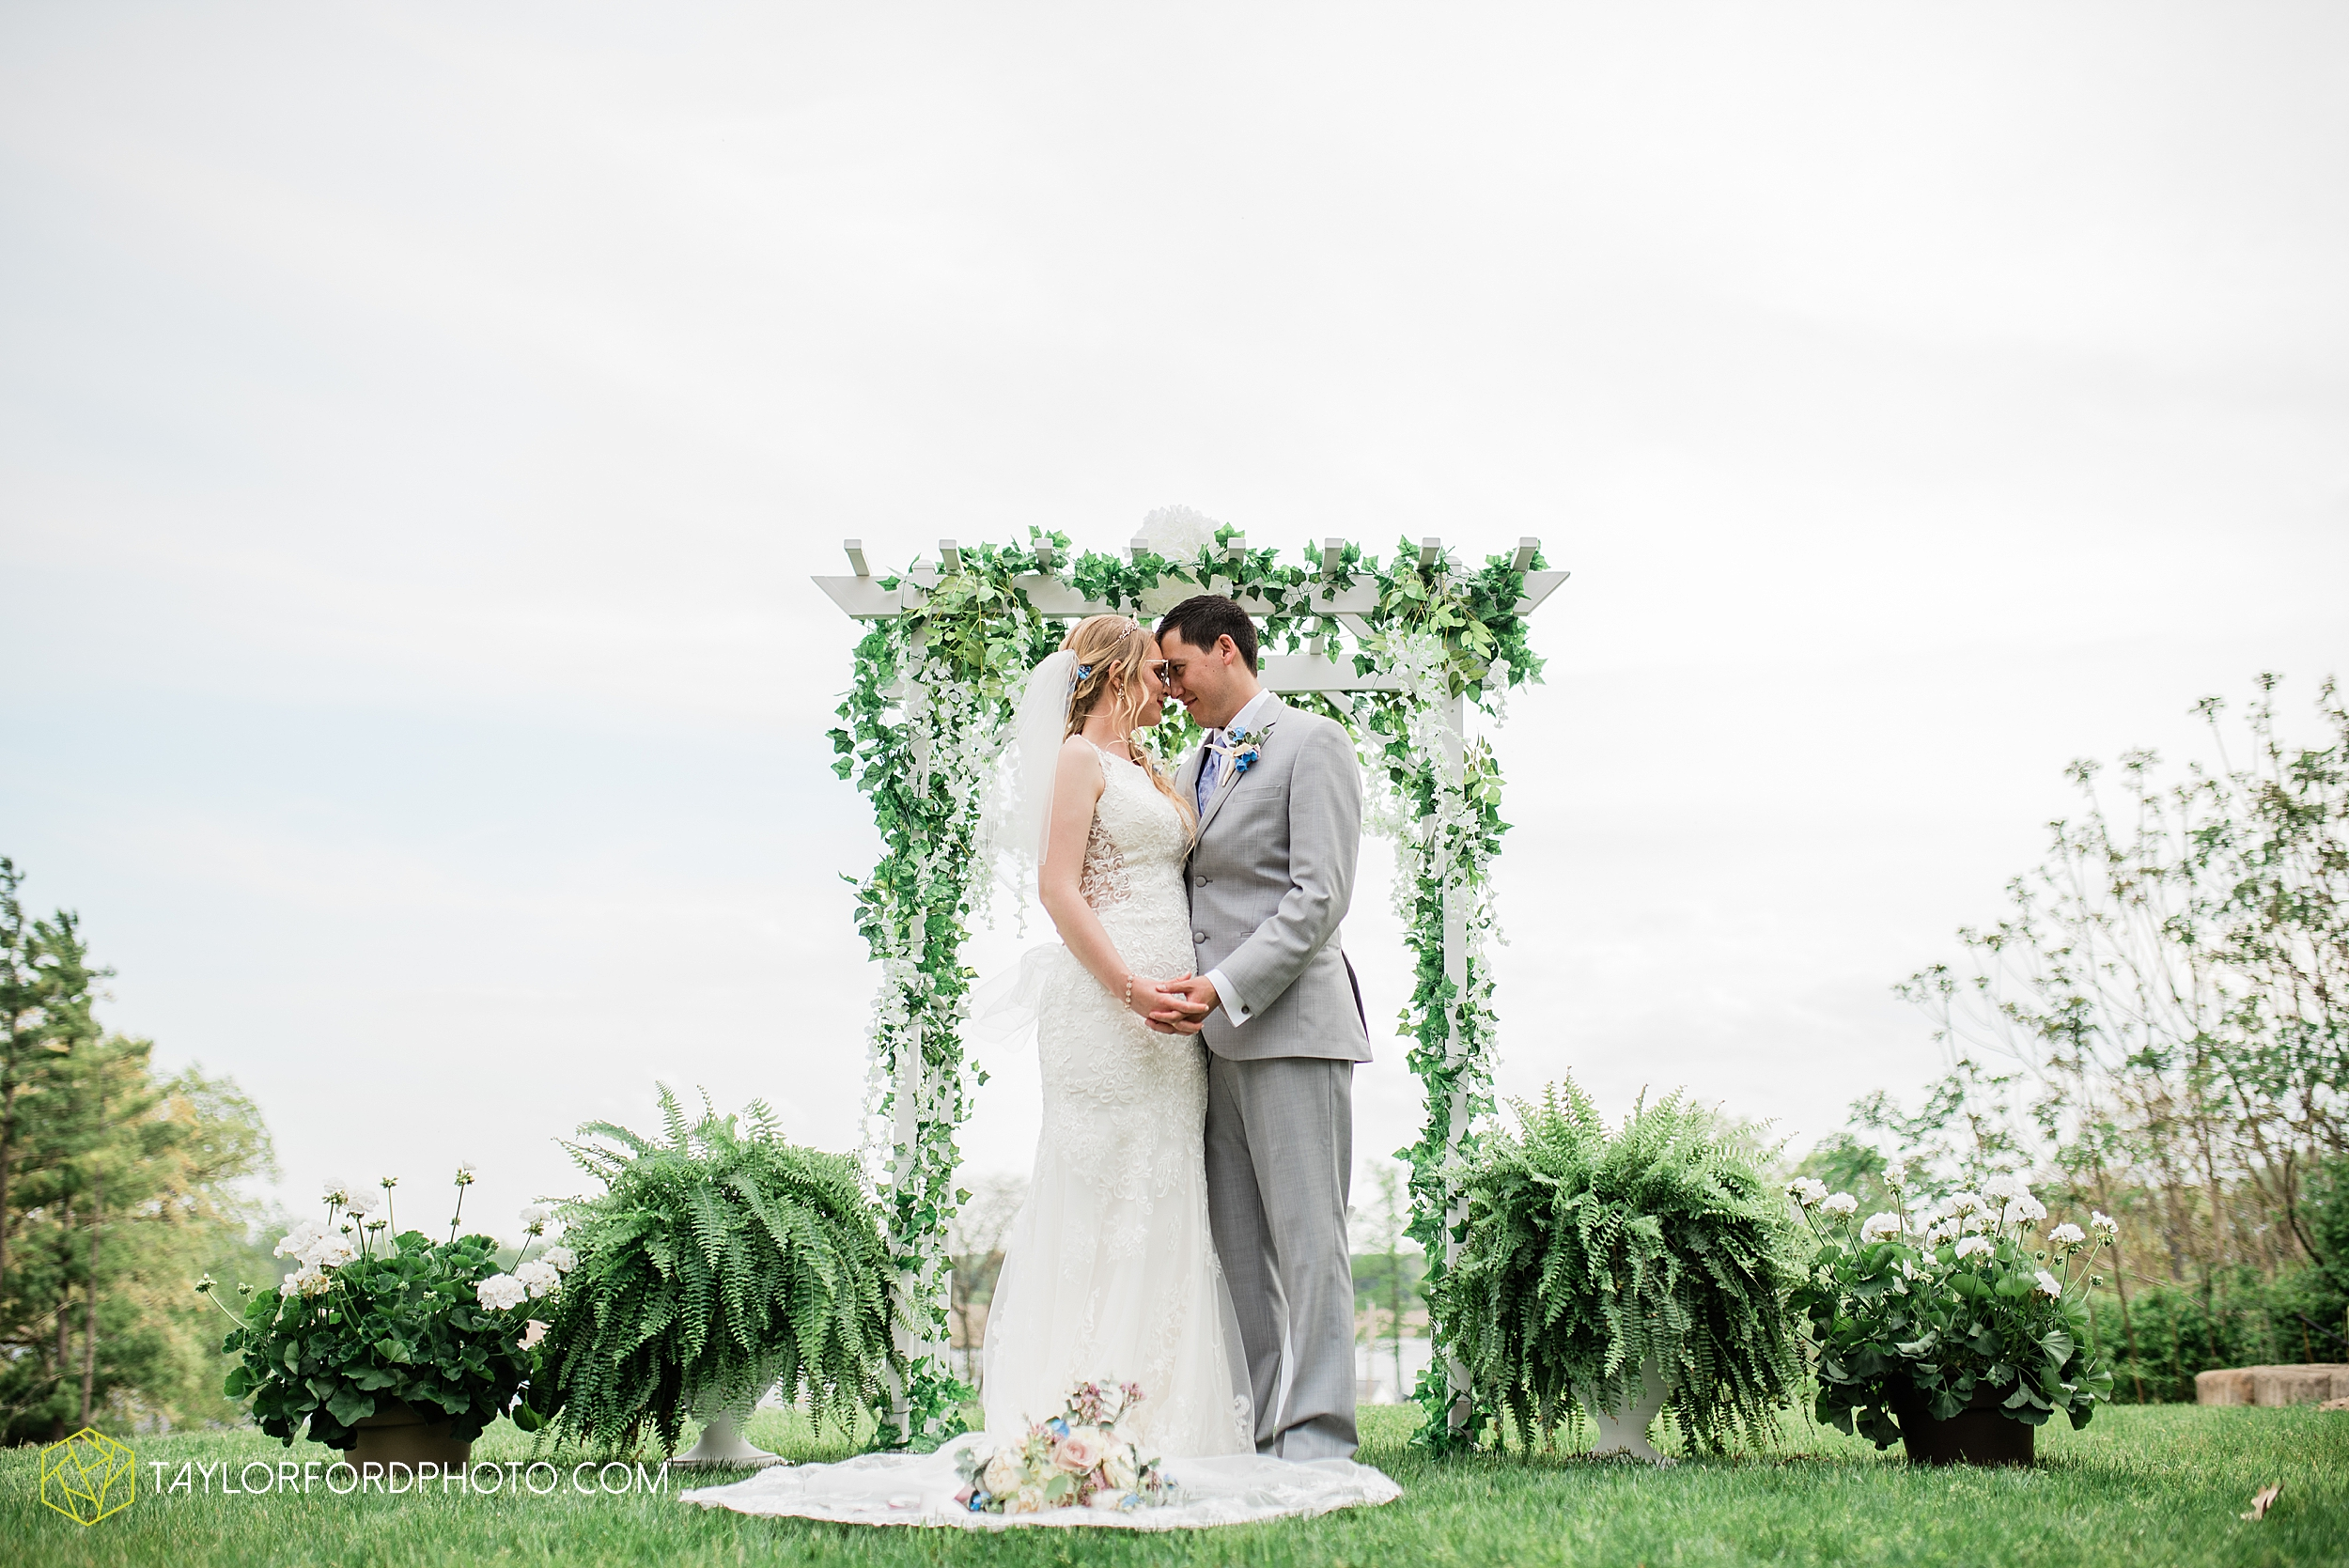 janine-shaun-oakwood-resort-syracuse-indiana-lake-wawasee-wedding-hilltop-one-fine-day-photographer-photography-taylor-ford-hirschy-photographer_2758.jpg